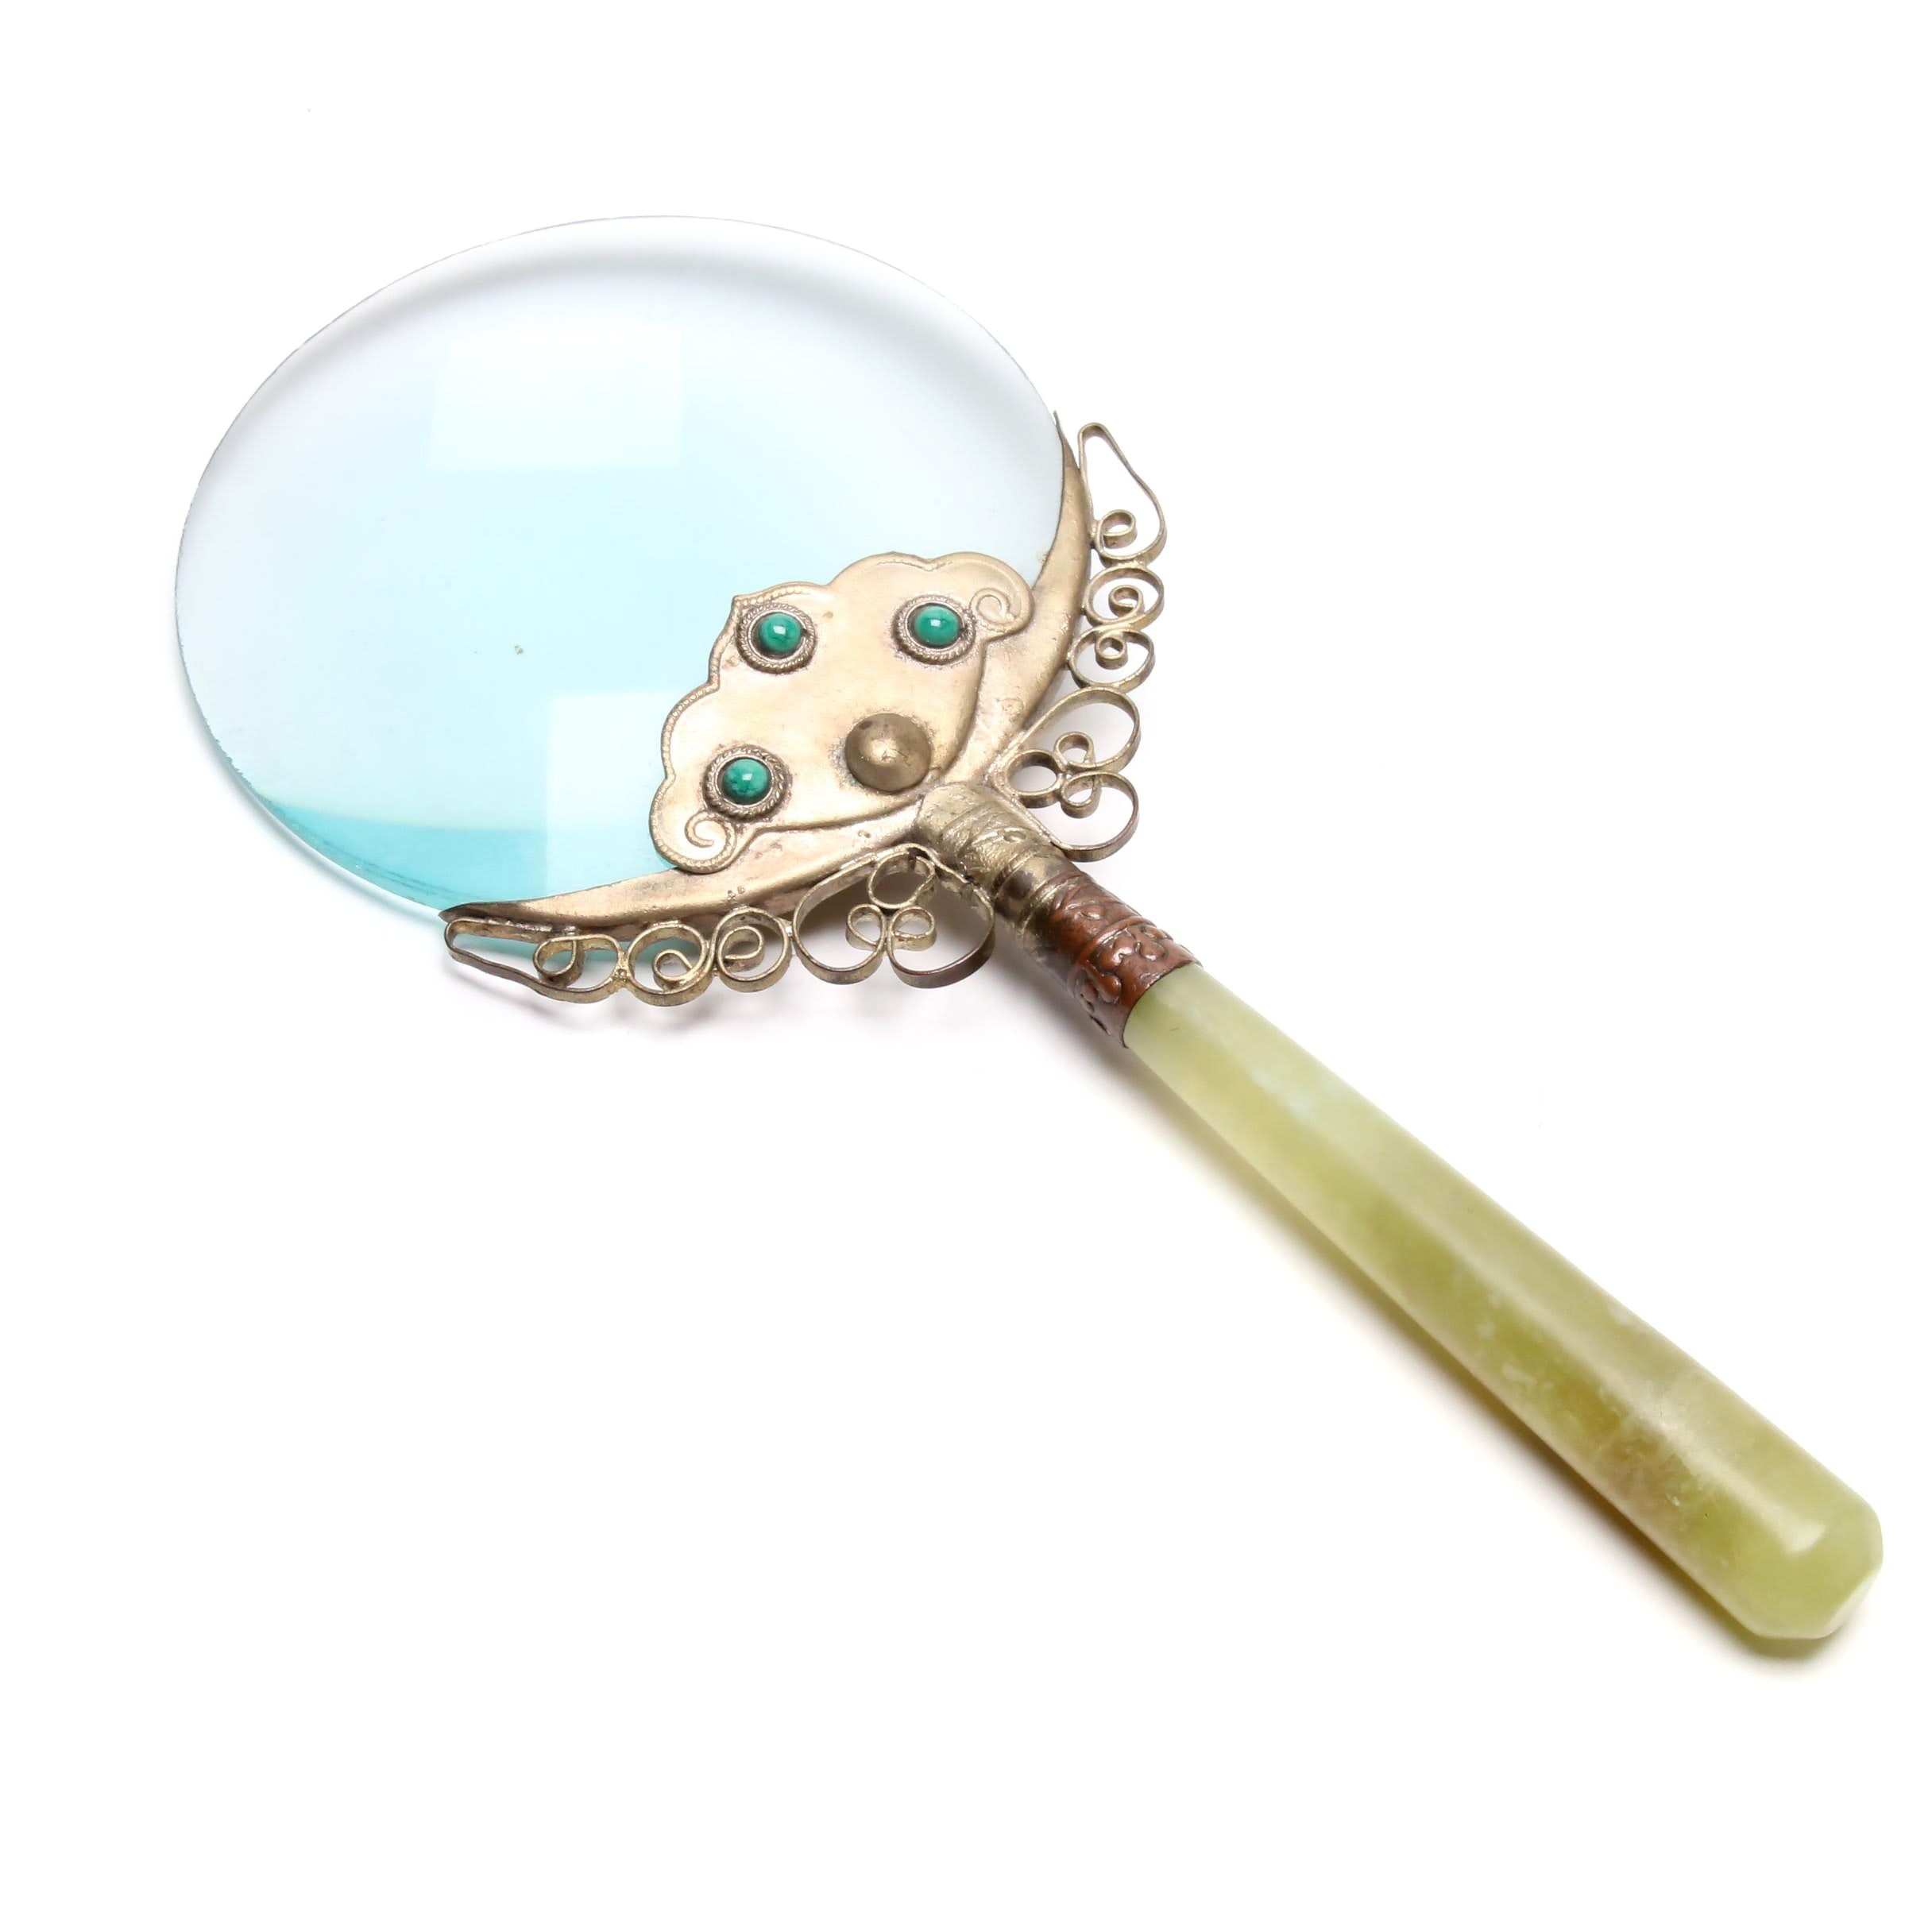 Silver Plate Accented Magnifying Glass with Serpentine Handle